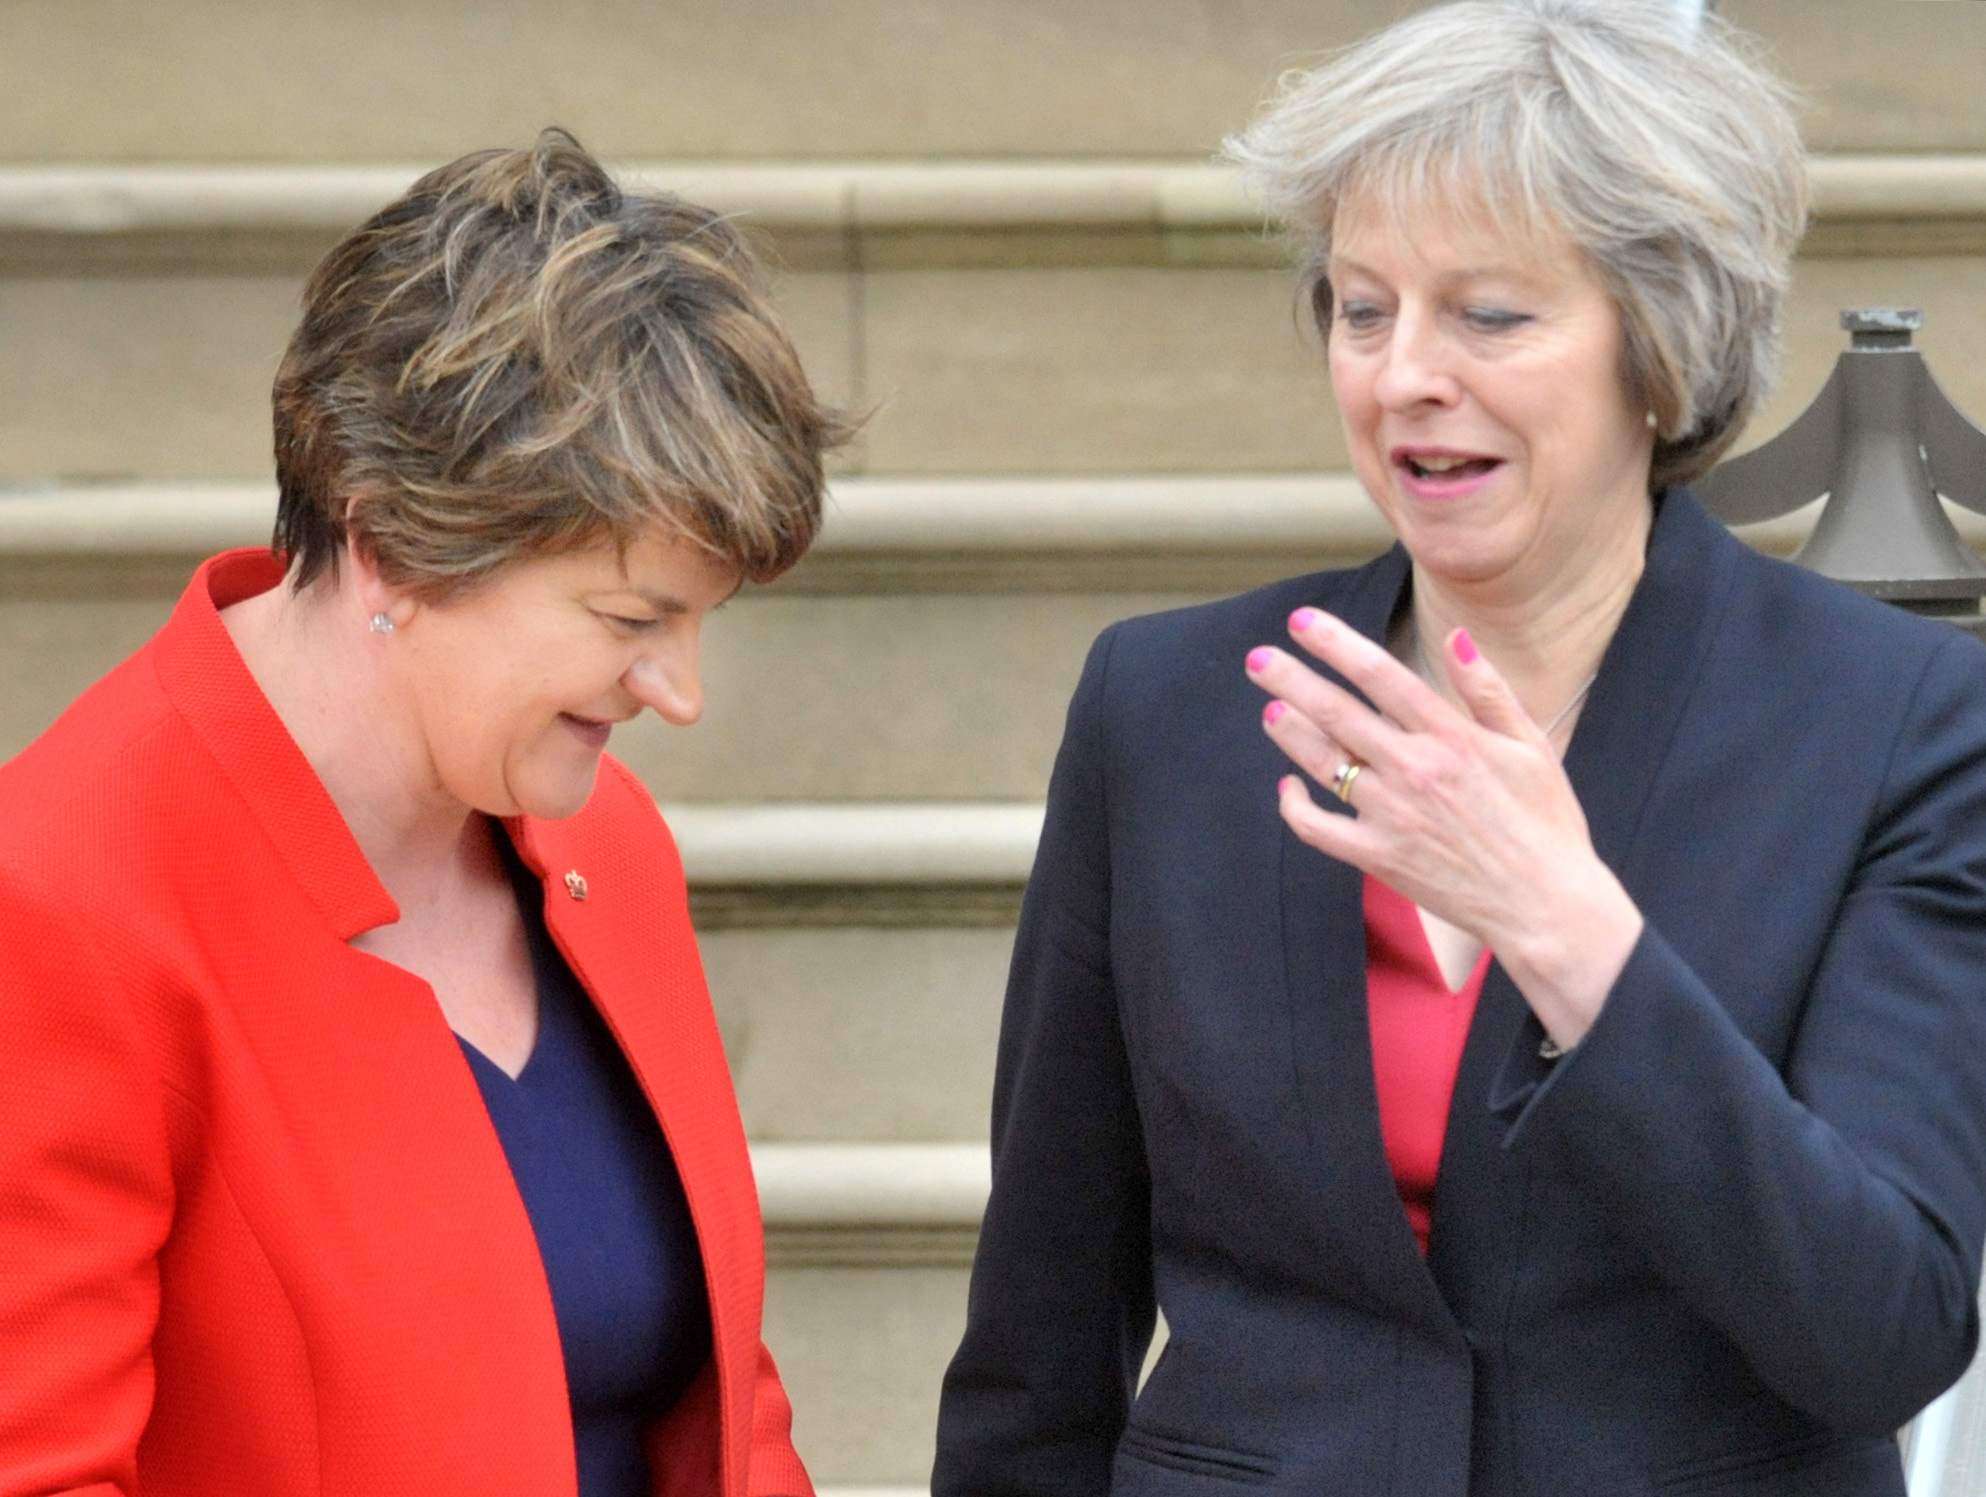 Alan Lewis- PhotopressBelfast.co.uk        9-6-2017 Theresa May has announced that, following the GE17 election results, that she will form a minority government with support of the DUP's 10 Westminster MP's.  Mrs May has spoken to DUP leader Arle